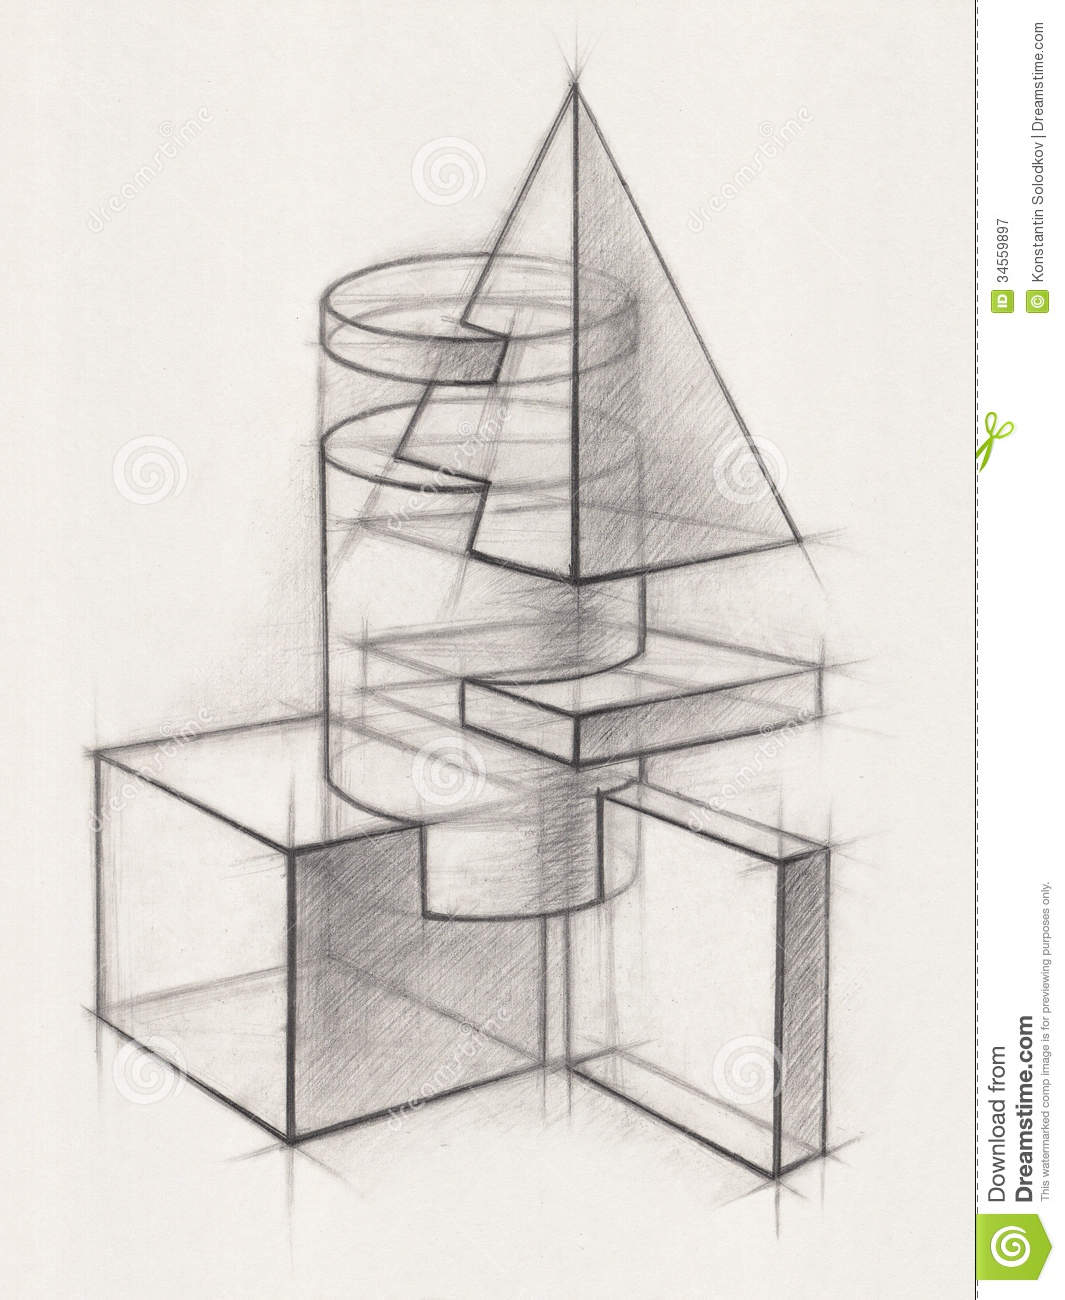 Solid geometric shapes stock illustration image of for Architecture geometrique